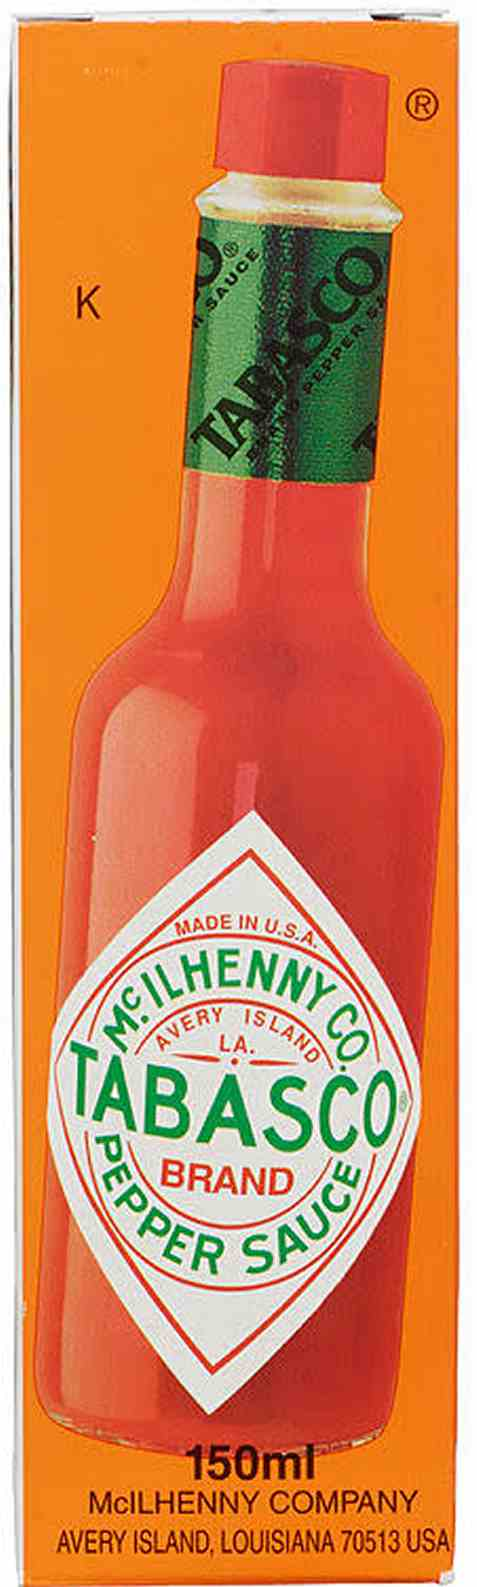 Bilde av Tabasco Pepper Sauce 150 ml.